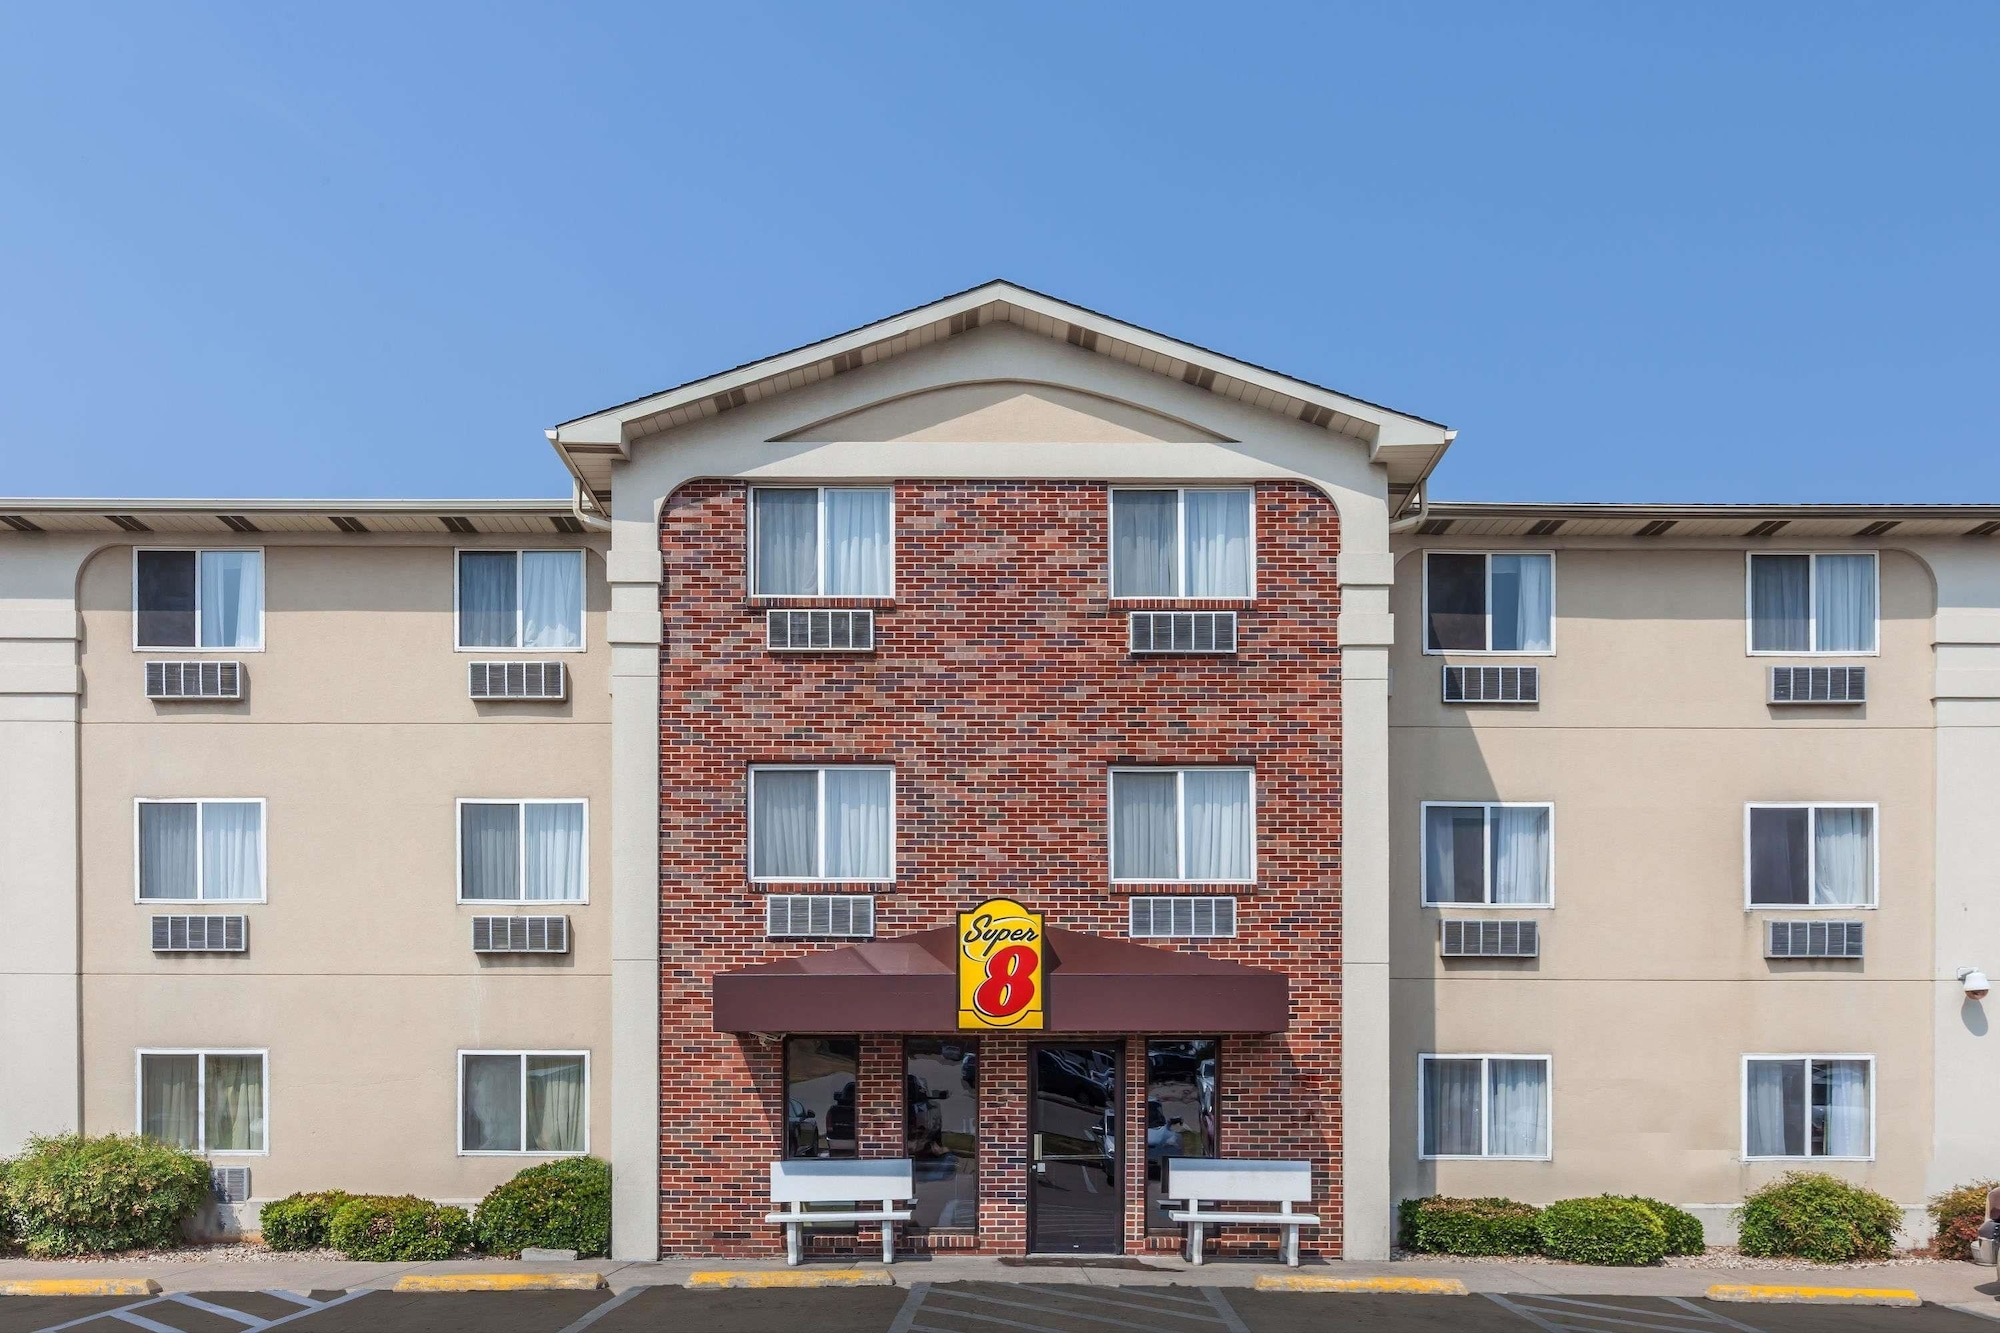 Super 8 by Wyndham Irving DFW Airport/South, Dallas